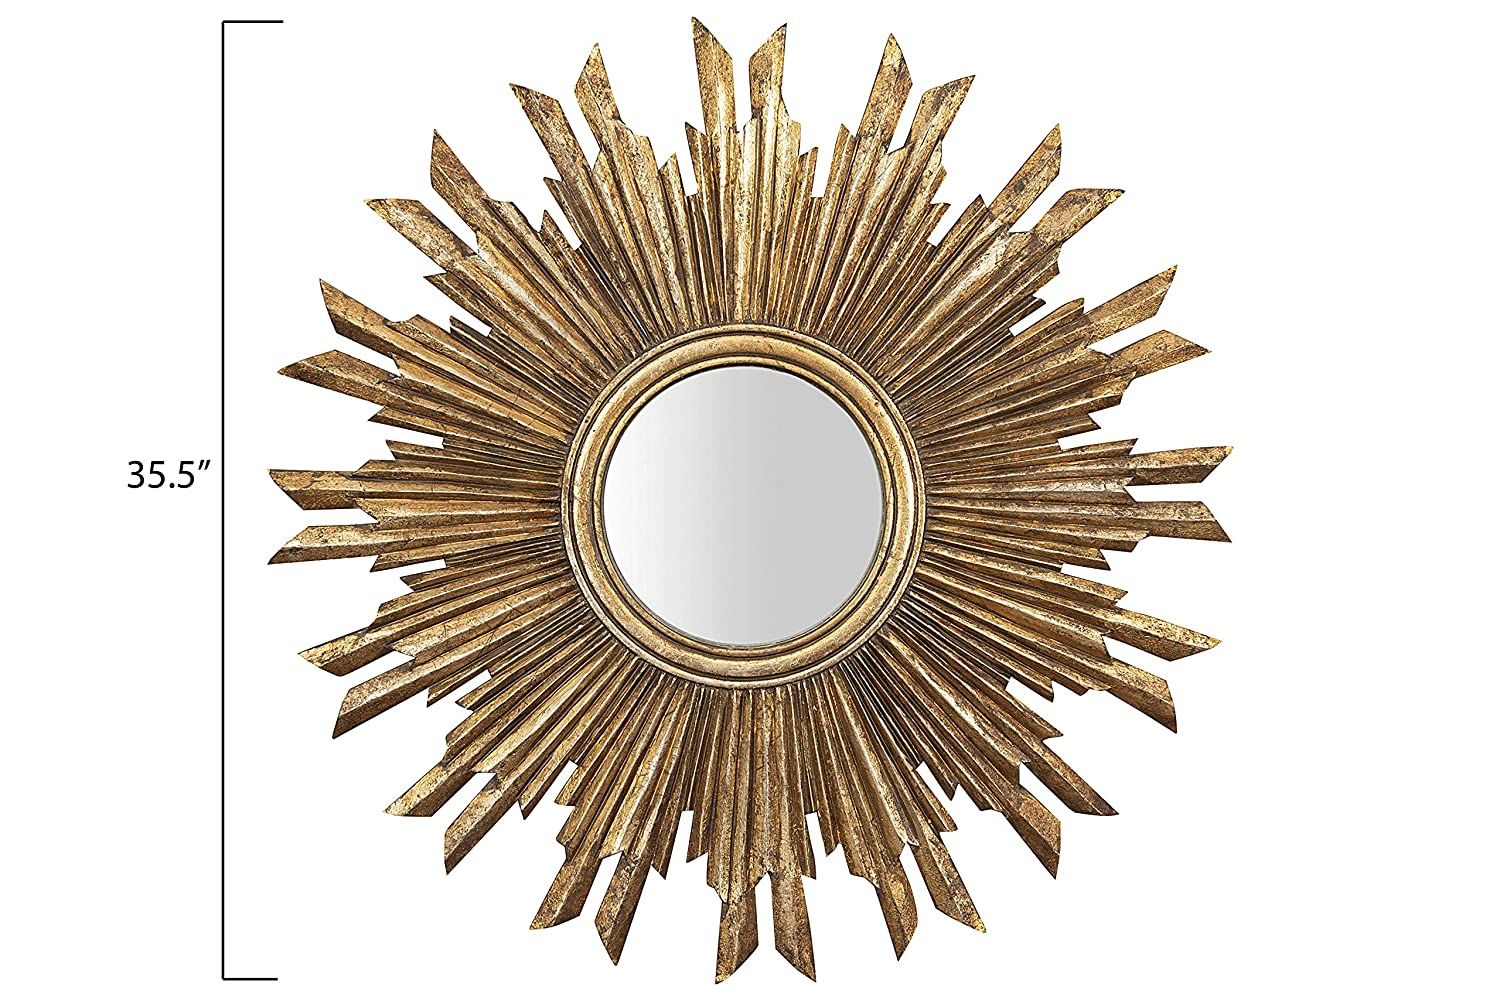 Sunburst mirror with gold finish for your classic, French country, or Parisian style space. #gildedmirror #mirrors #sunburstmirror #frenchcountry